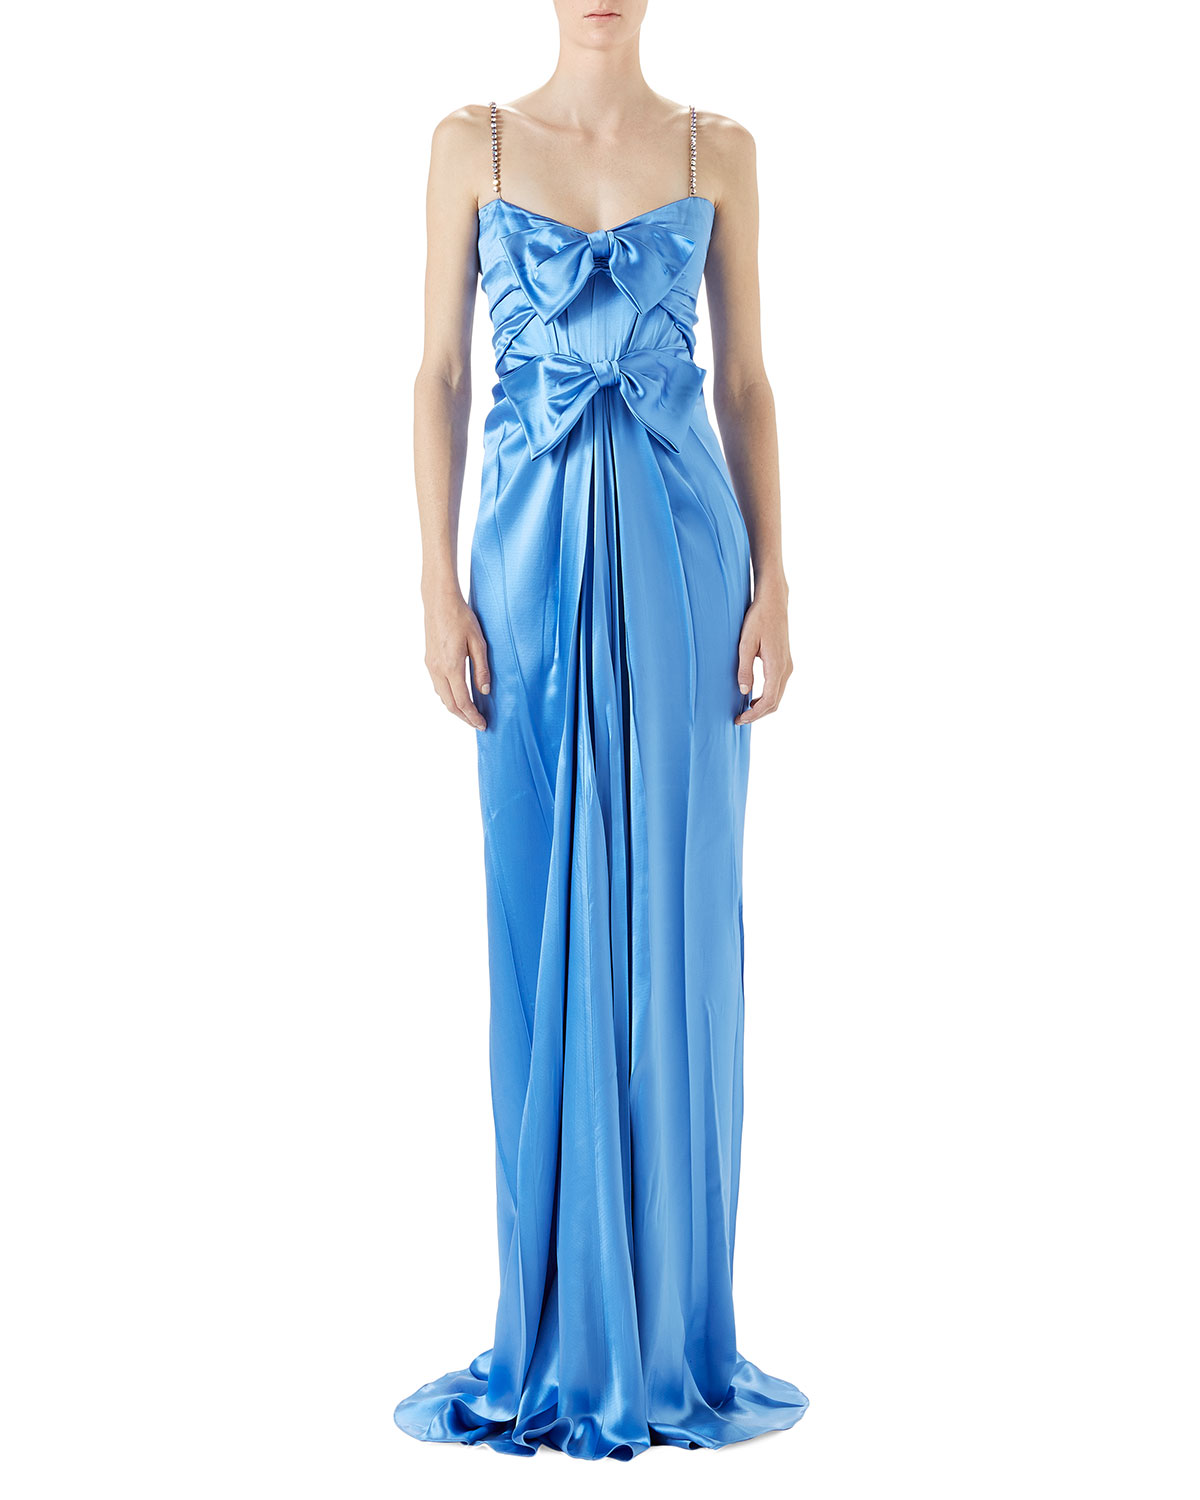 Amazing Bridesmaid Dresses Neiman Marcus Composition - All Wedding ...